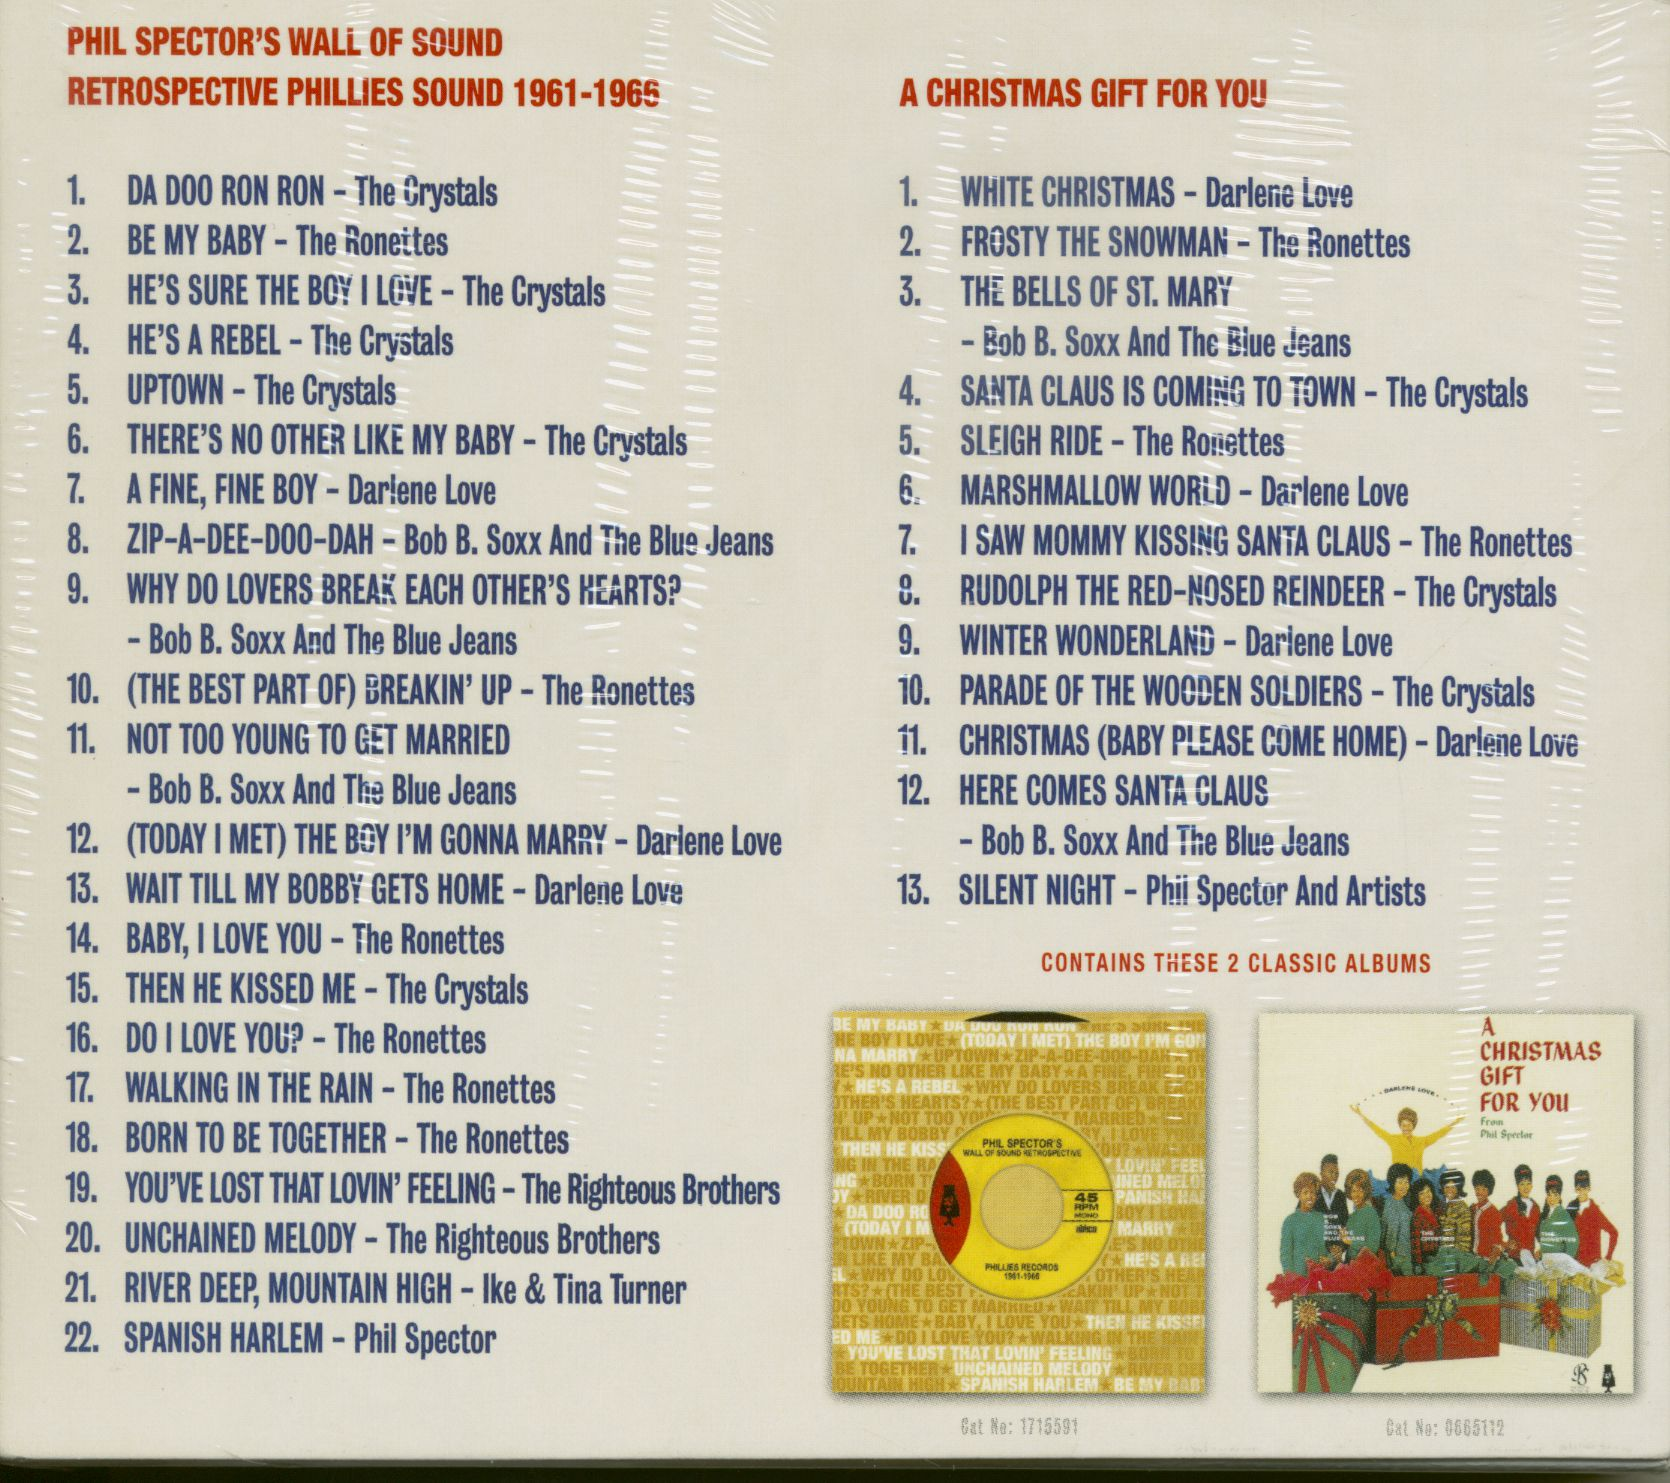 Phil Spector & Others CD: The Phill Spector Collection - Wall Of Sound Retrospective & Christmas ...